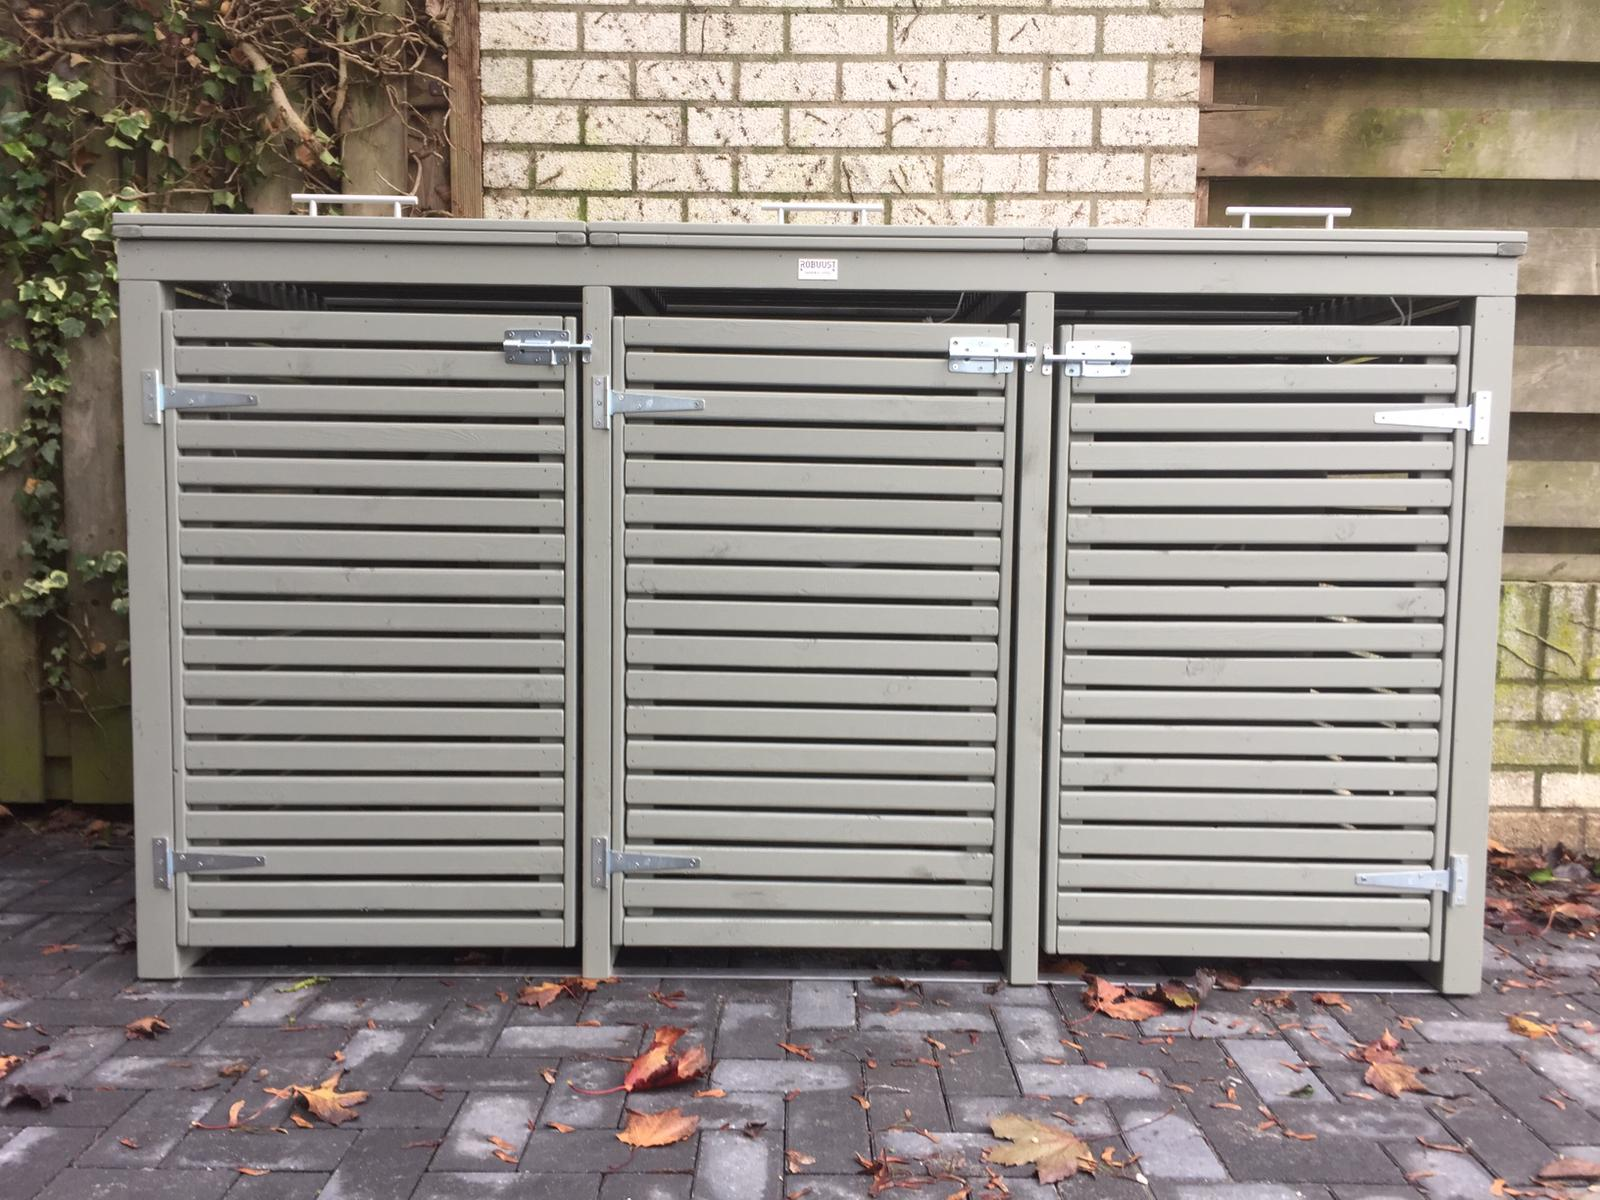 container-opbergkast-voor-3-containers-ral-7023